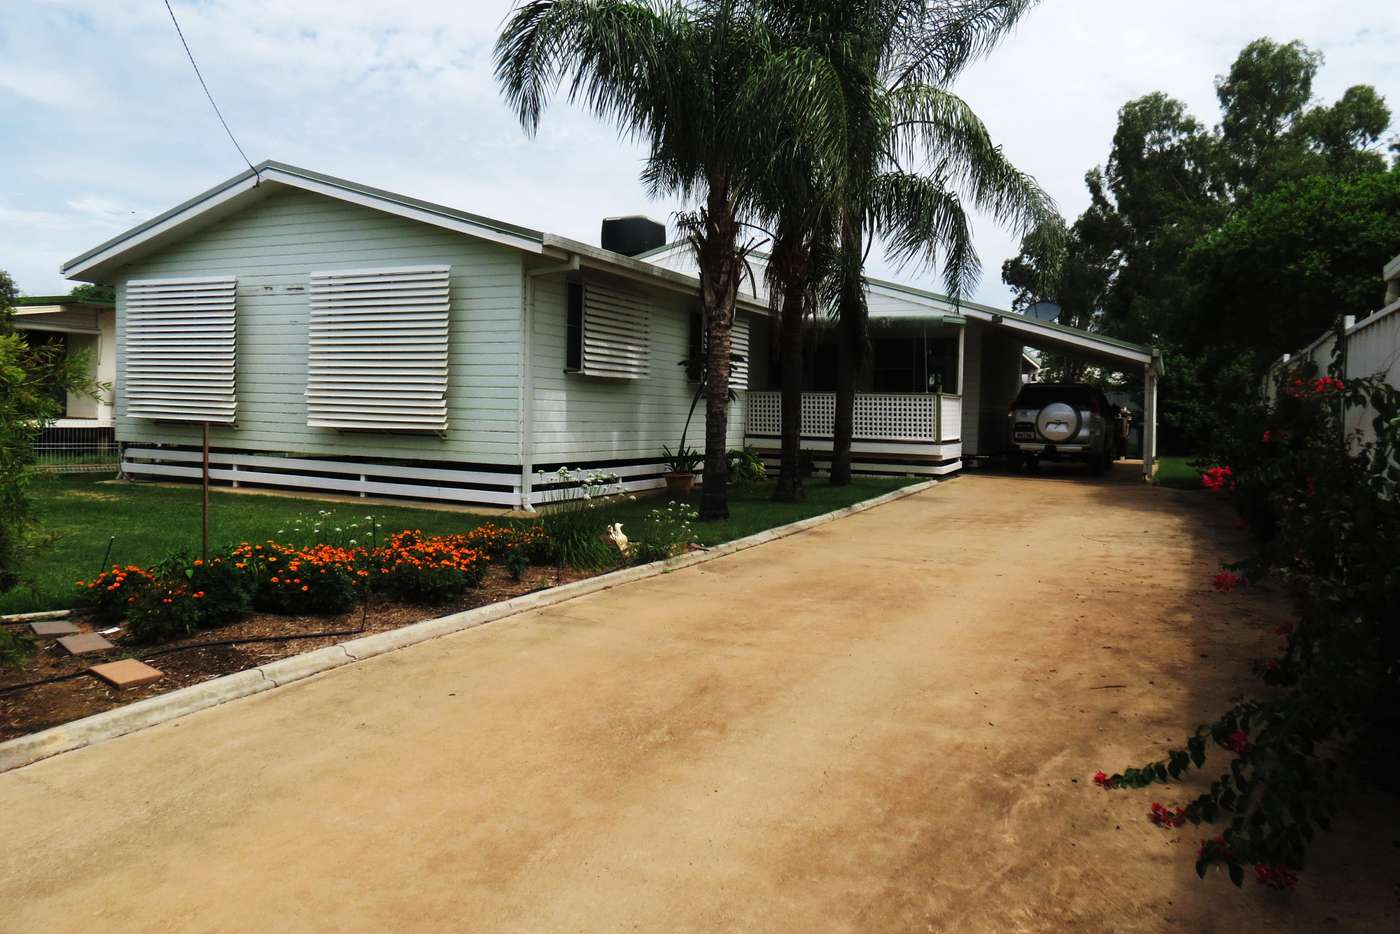 Main view of Homely house listing, 36 Elmer Street, Roma QLD 4455